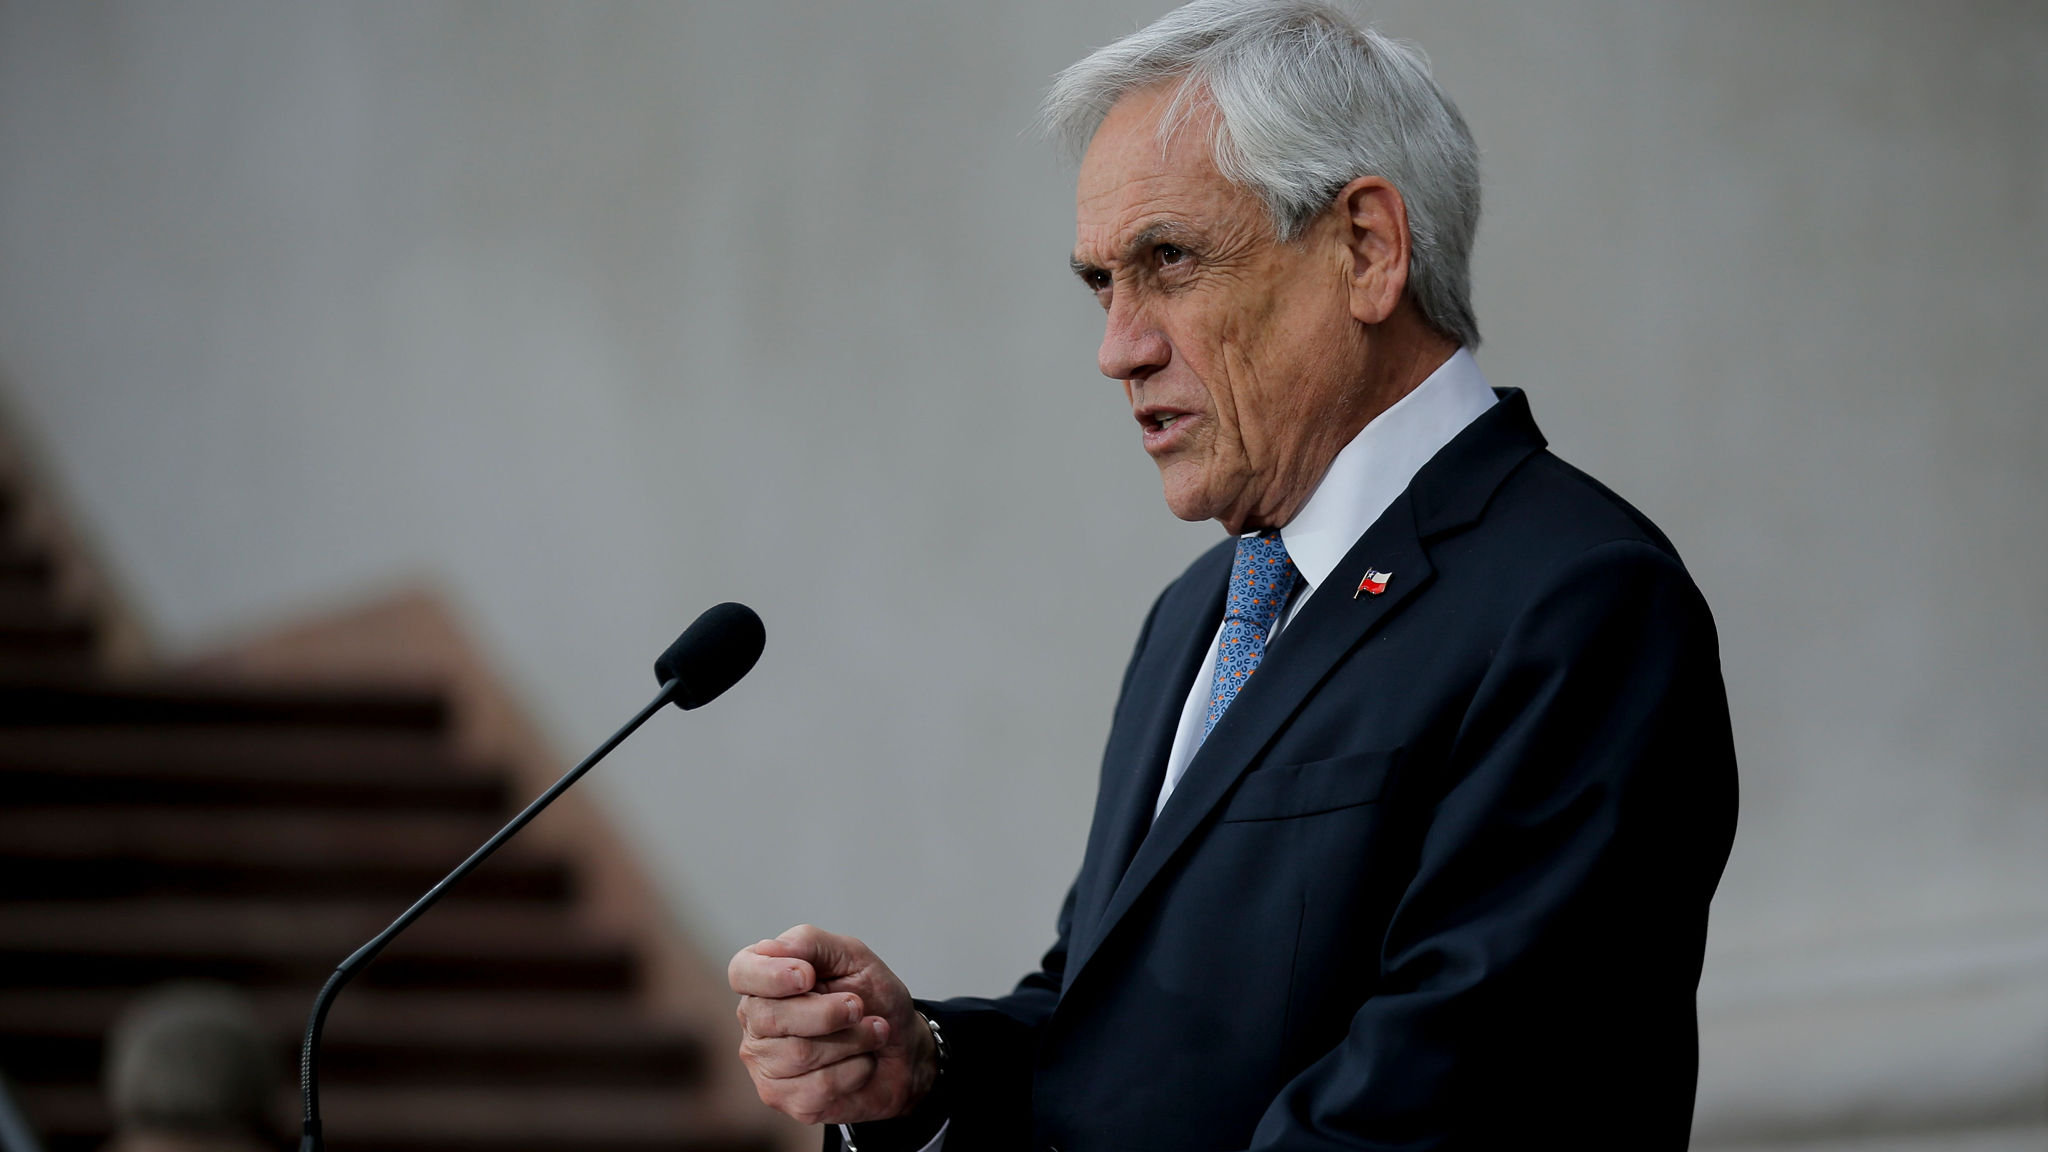 Chile president Sebastián Piñera: 'We are ready to do everything to not fall into populism'